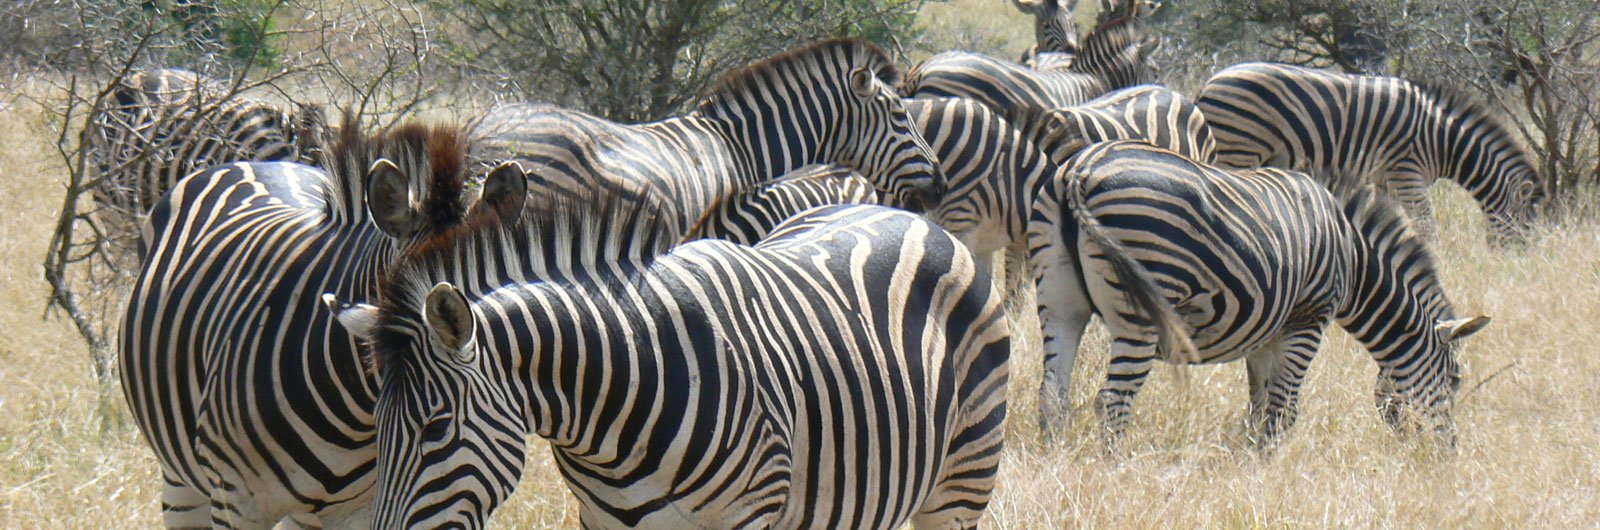 Want to See the Big 5? South Africa Safari Tips